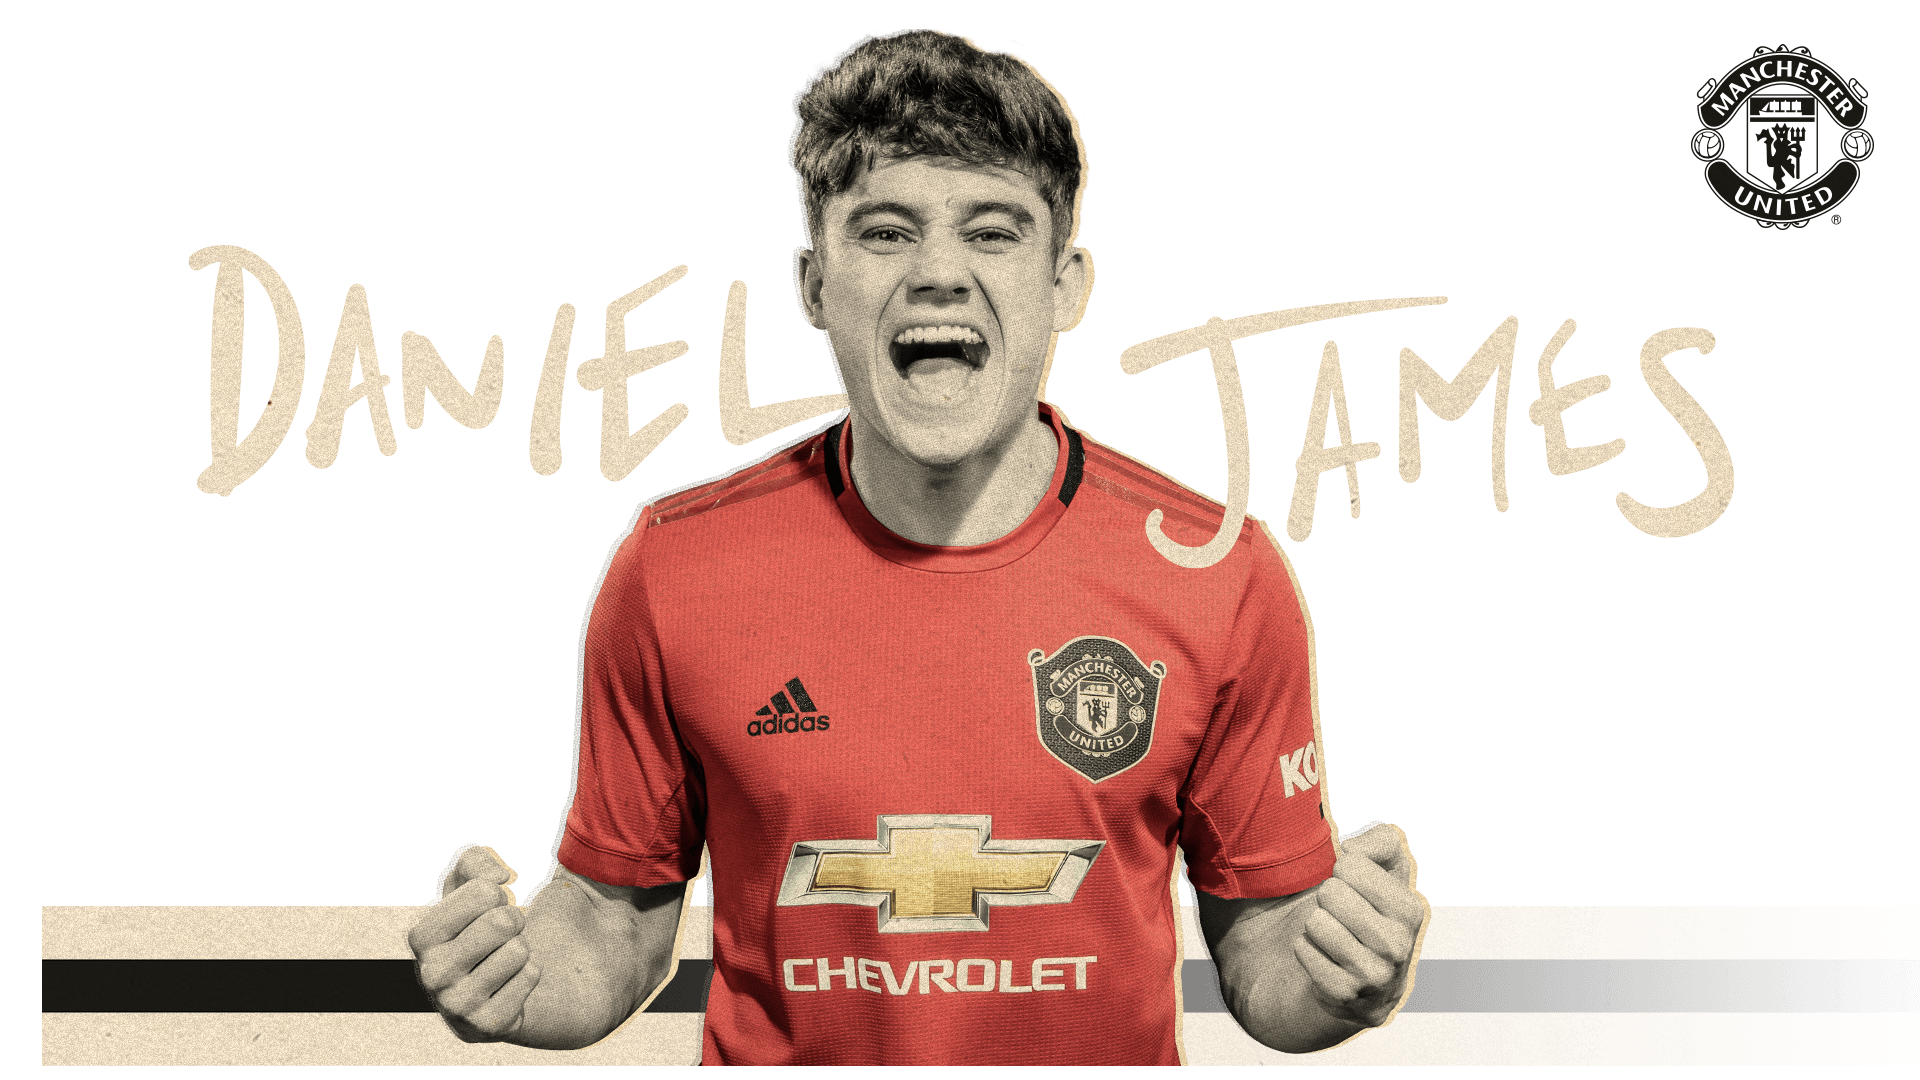 Manchester United Daniel James Signed Shirt